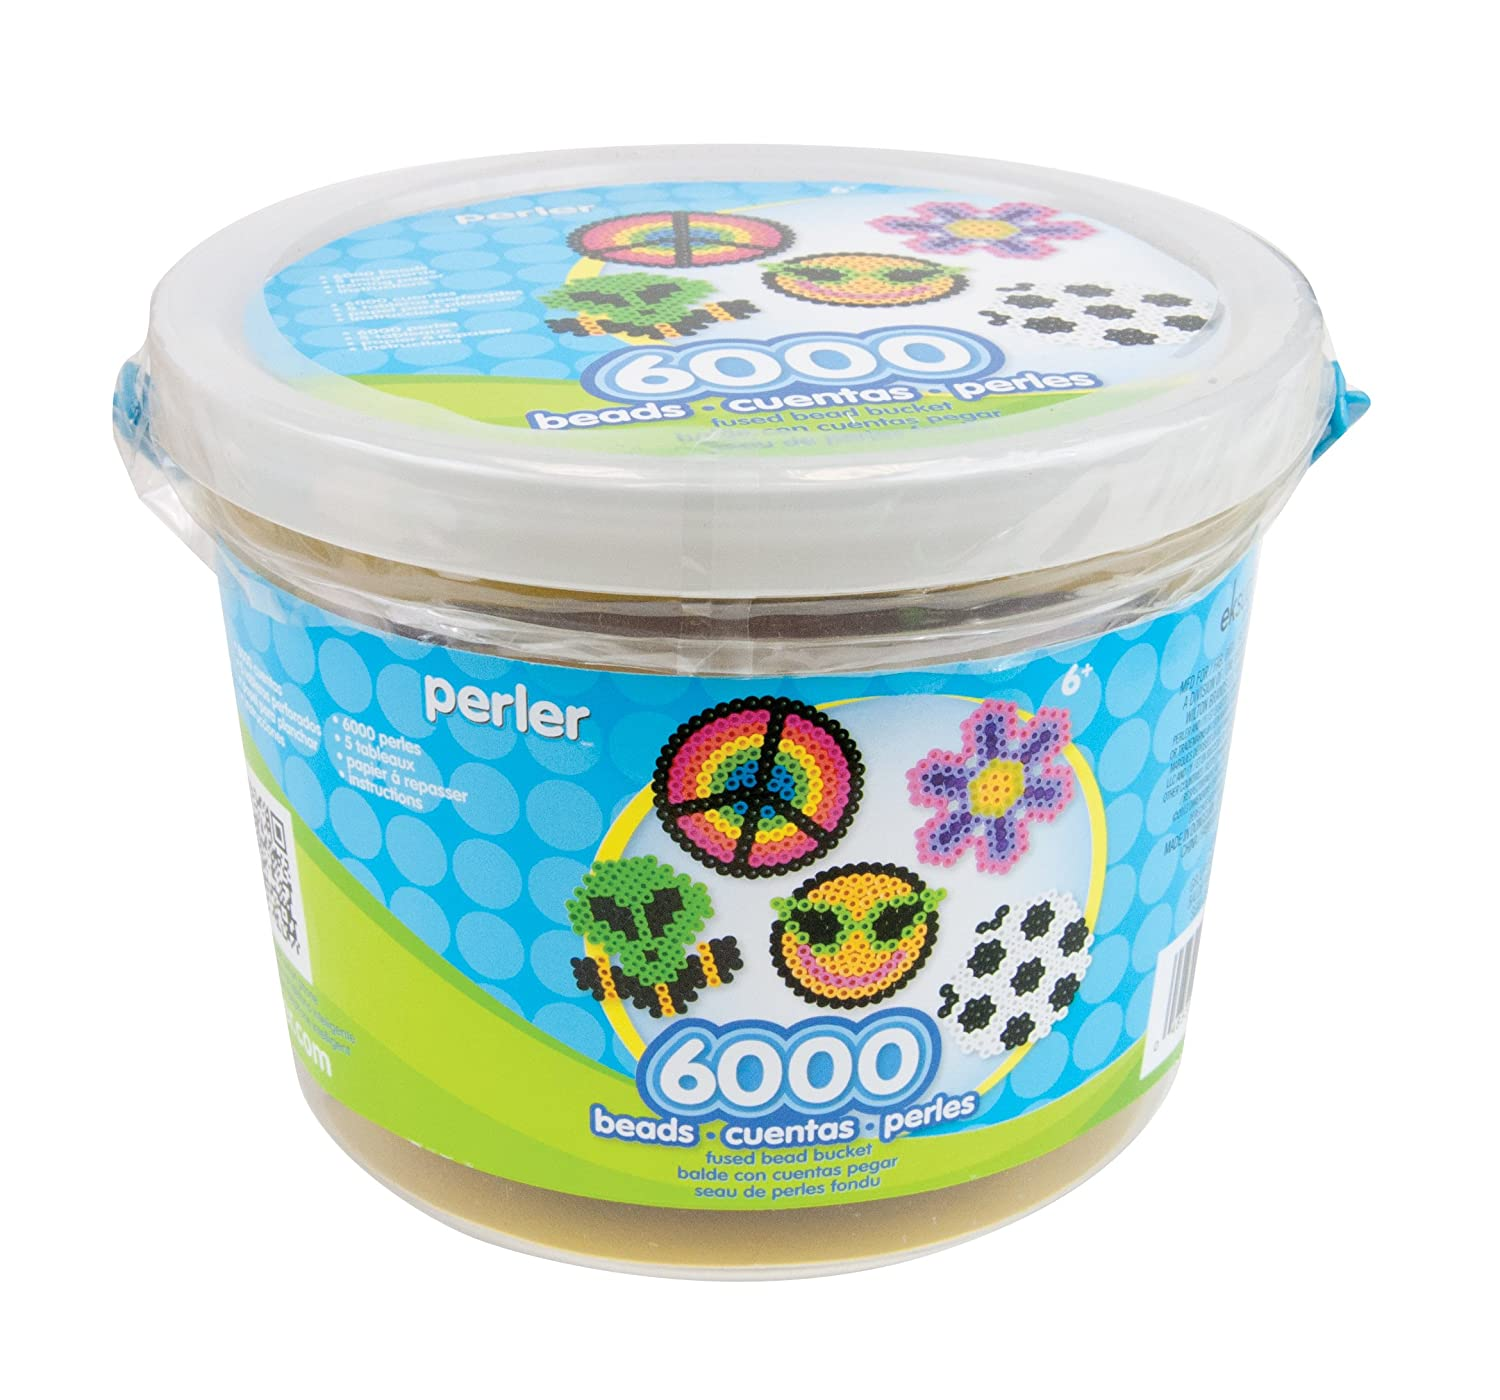 This bucket of beads will keep kids busy for hours! Create a design on a Pegboard, then iron to fuse the beads together. Bucket contains 6000 beads, 5 reusable Pegboards, Ironing Paper, and easy instructions. Pegboards included are: small square, small circle, small hexagon, small star, and small heart. For ages 5 and up